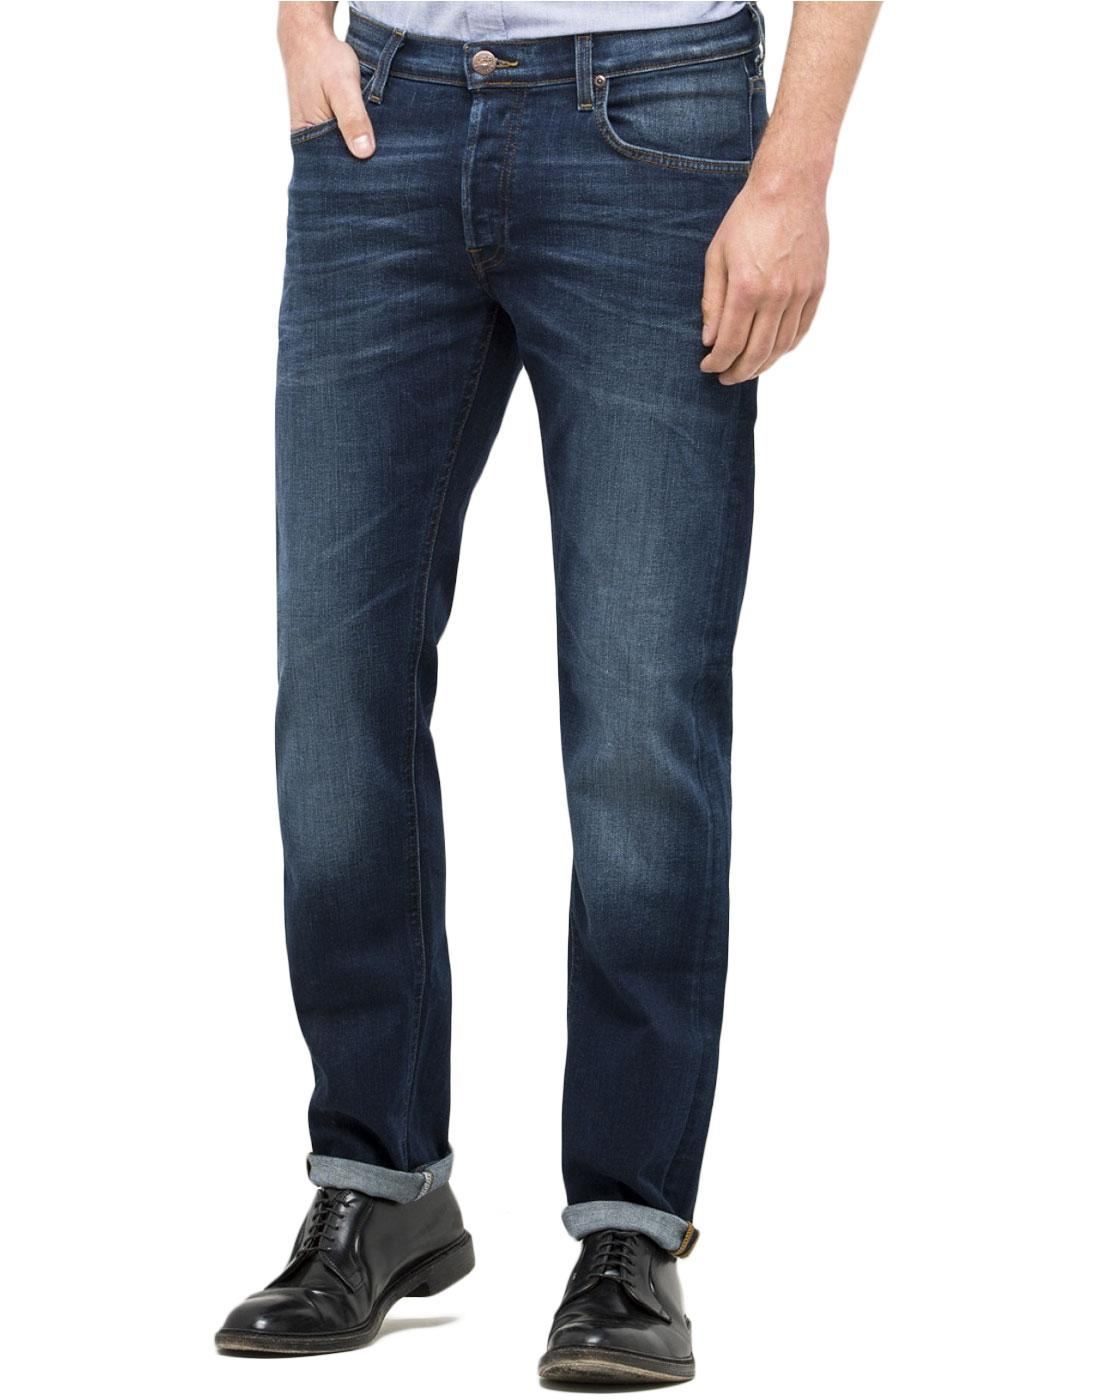 Daren LEE Mod Regular Slim Indigo Denim Jeans (BB)